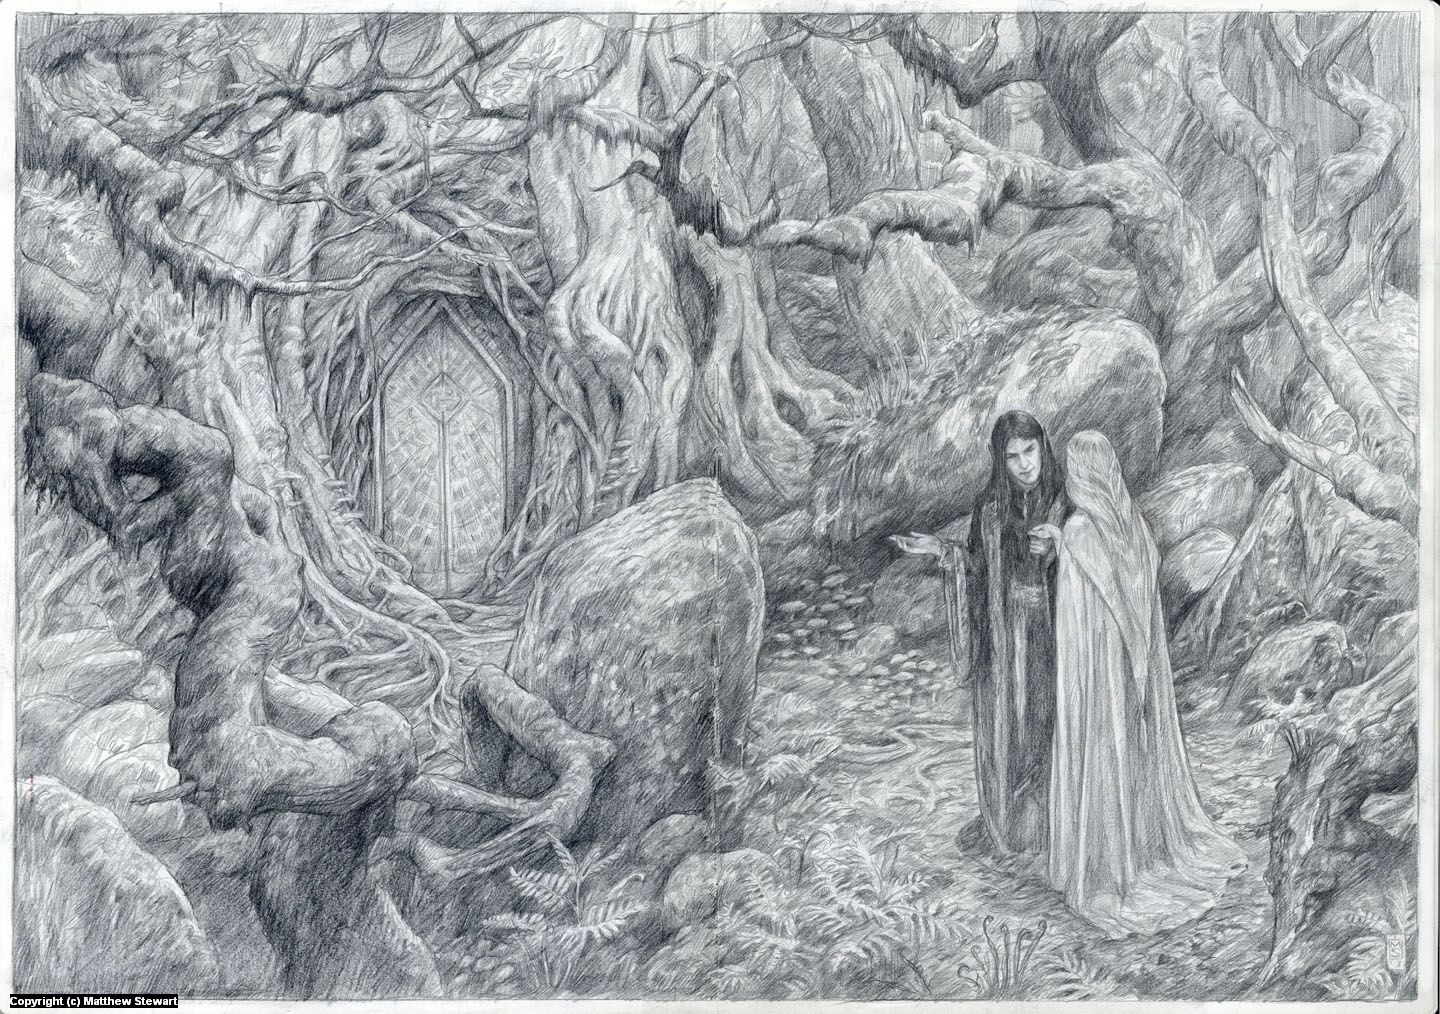 The Enchantment of Aredhel by Eol Artwork by Matthew Stewart